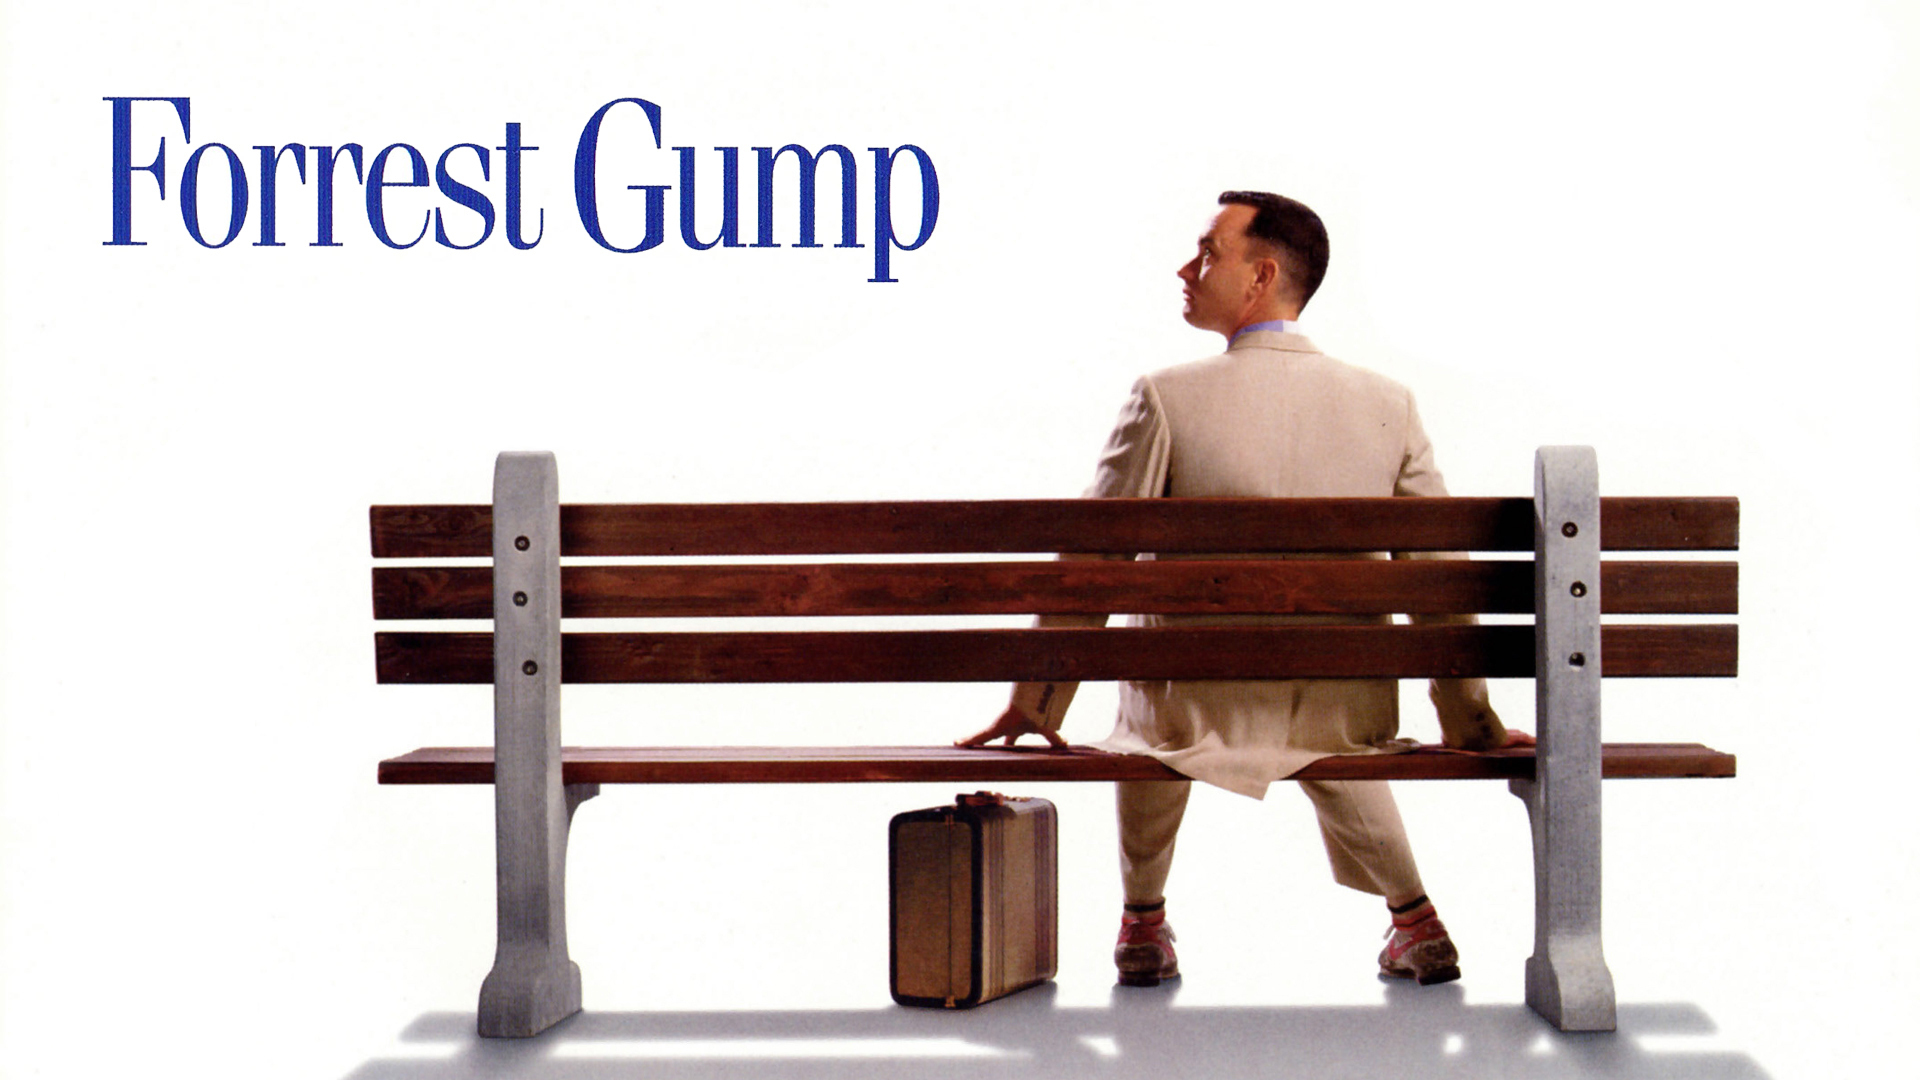 forrest-gump-imax-geeks-and-cleats.jpg